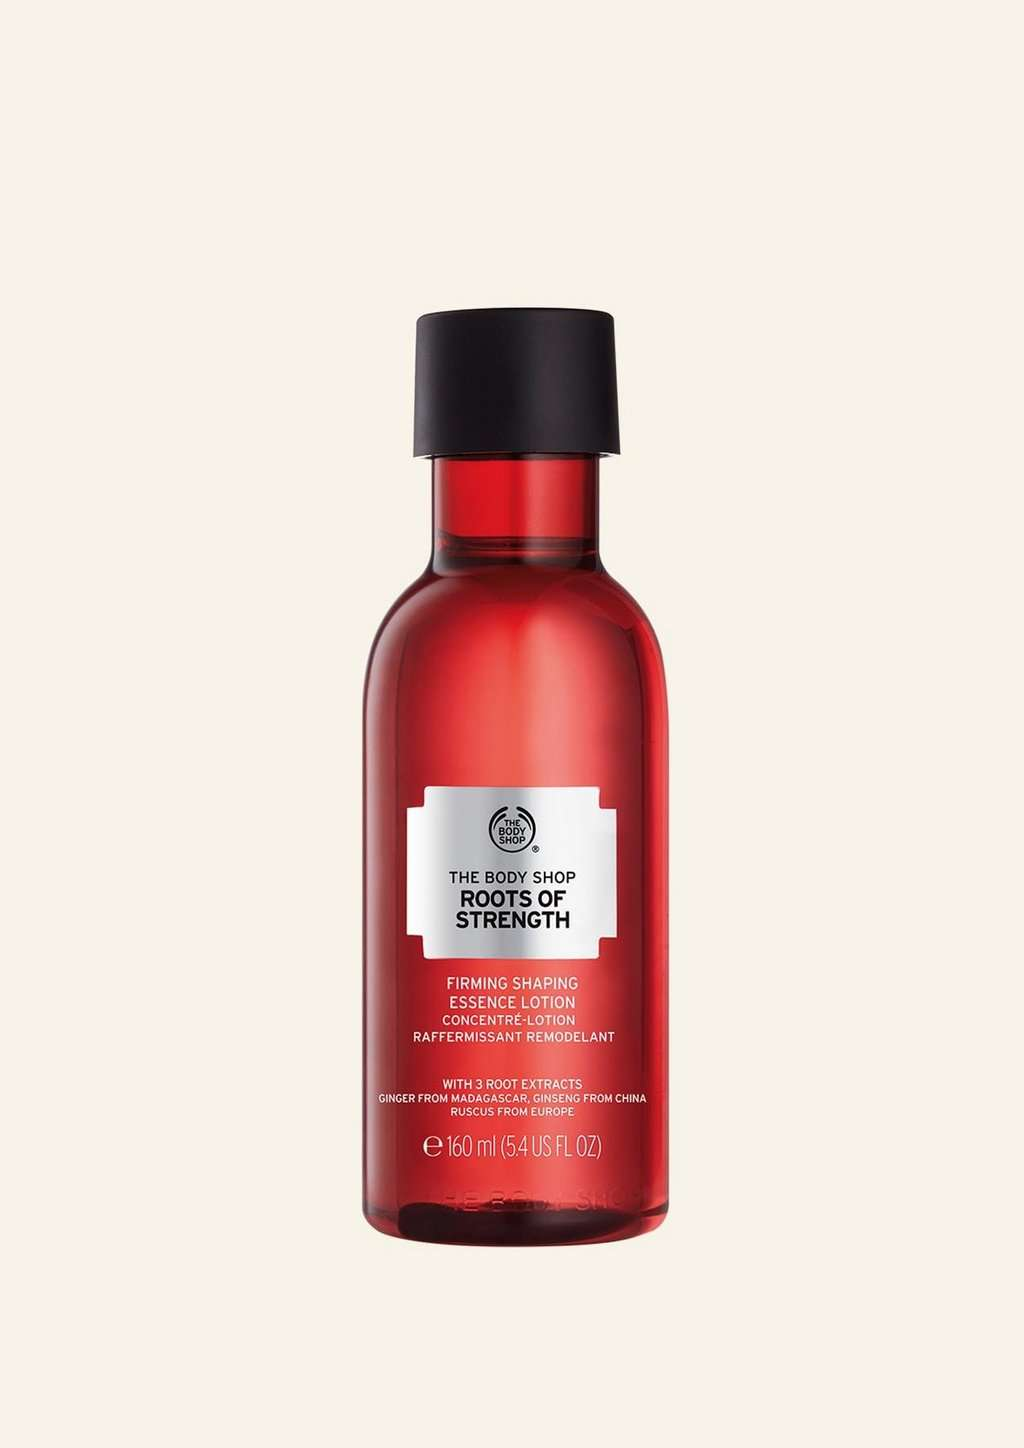 Roots of strength firming essence